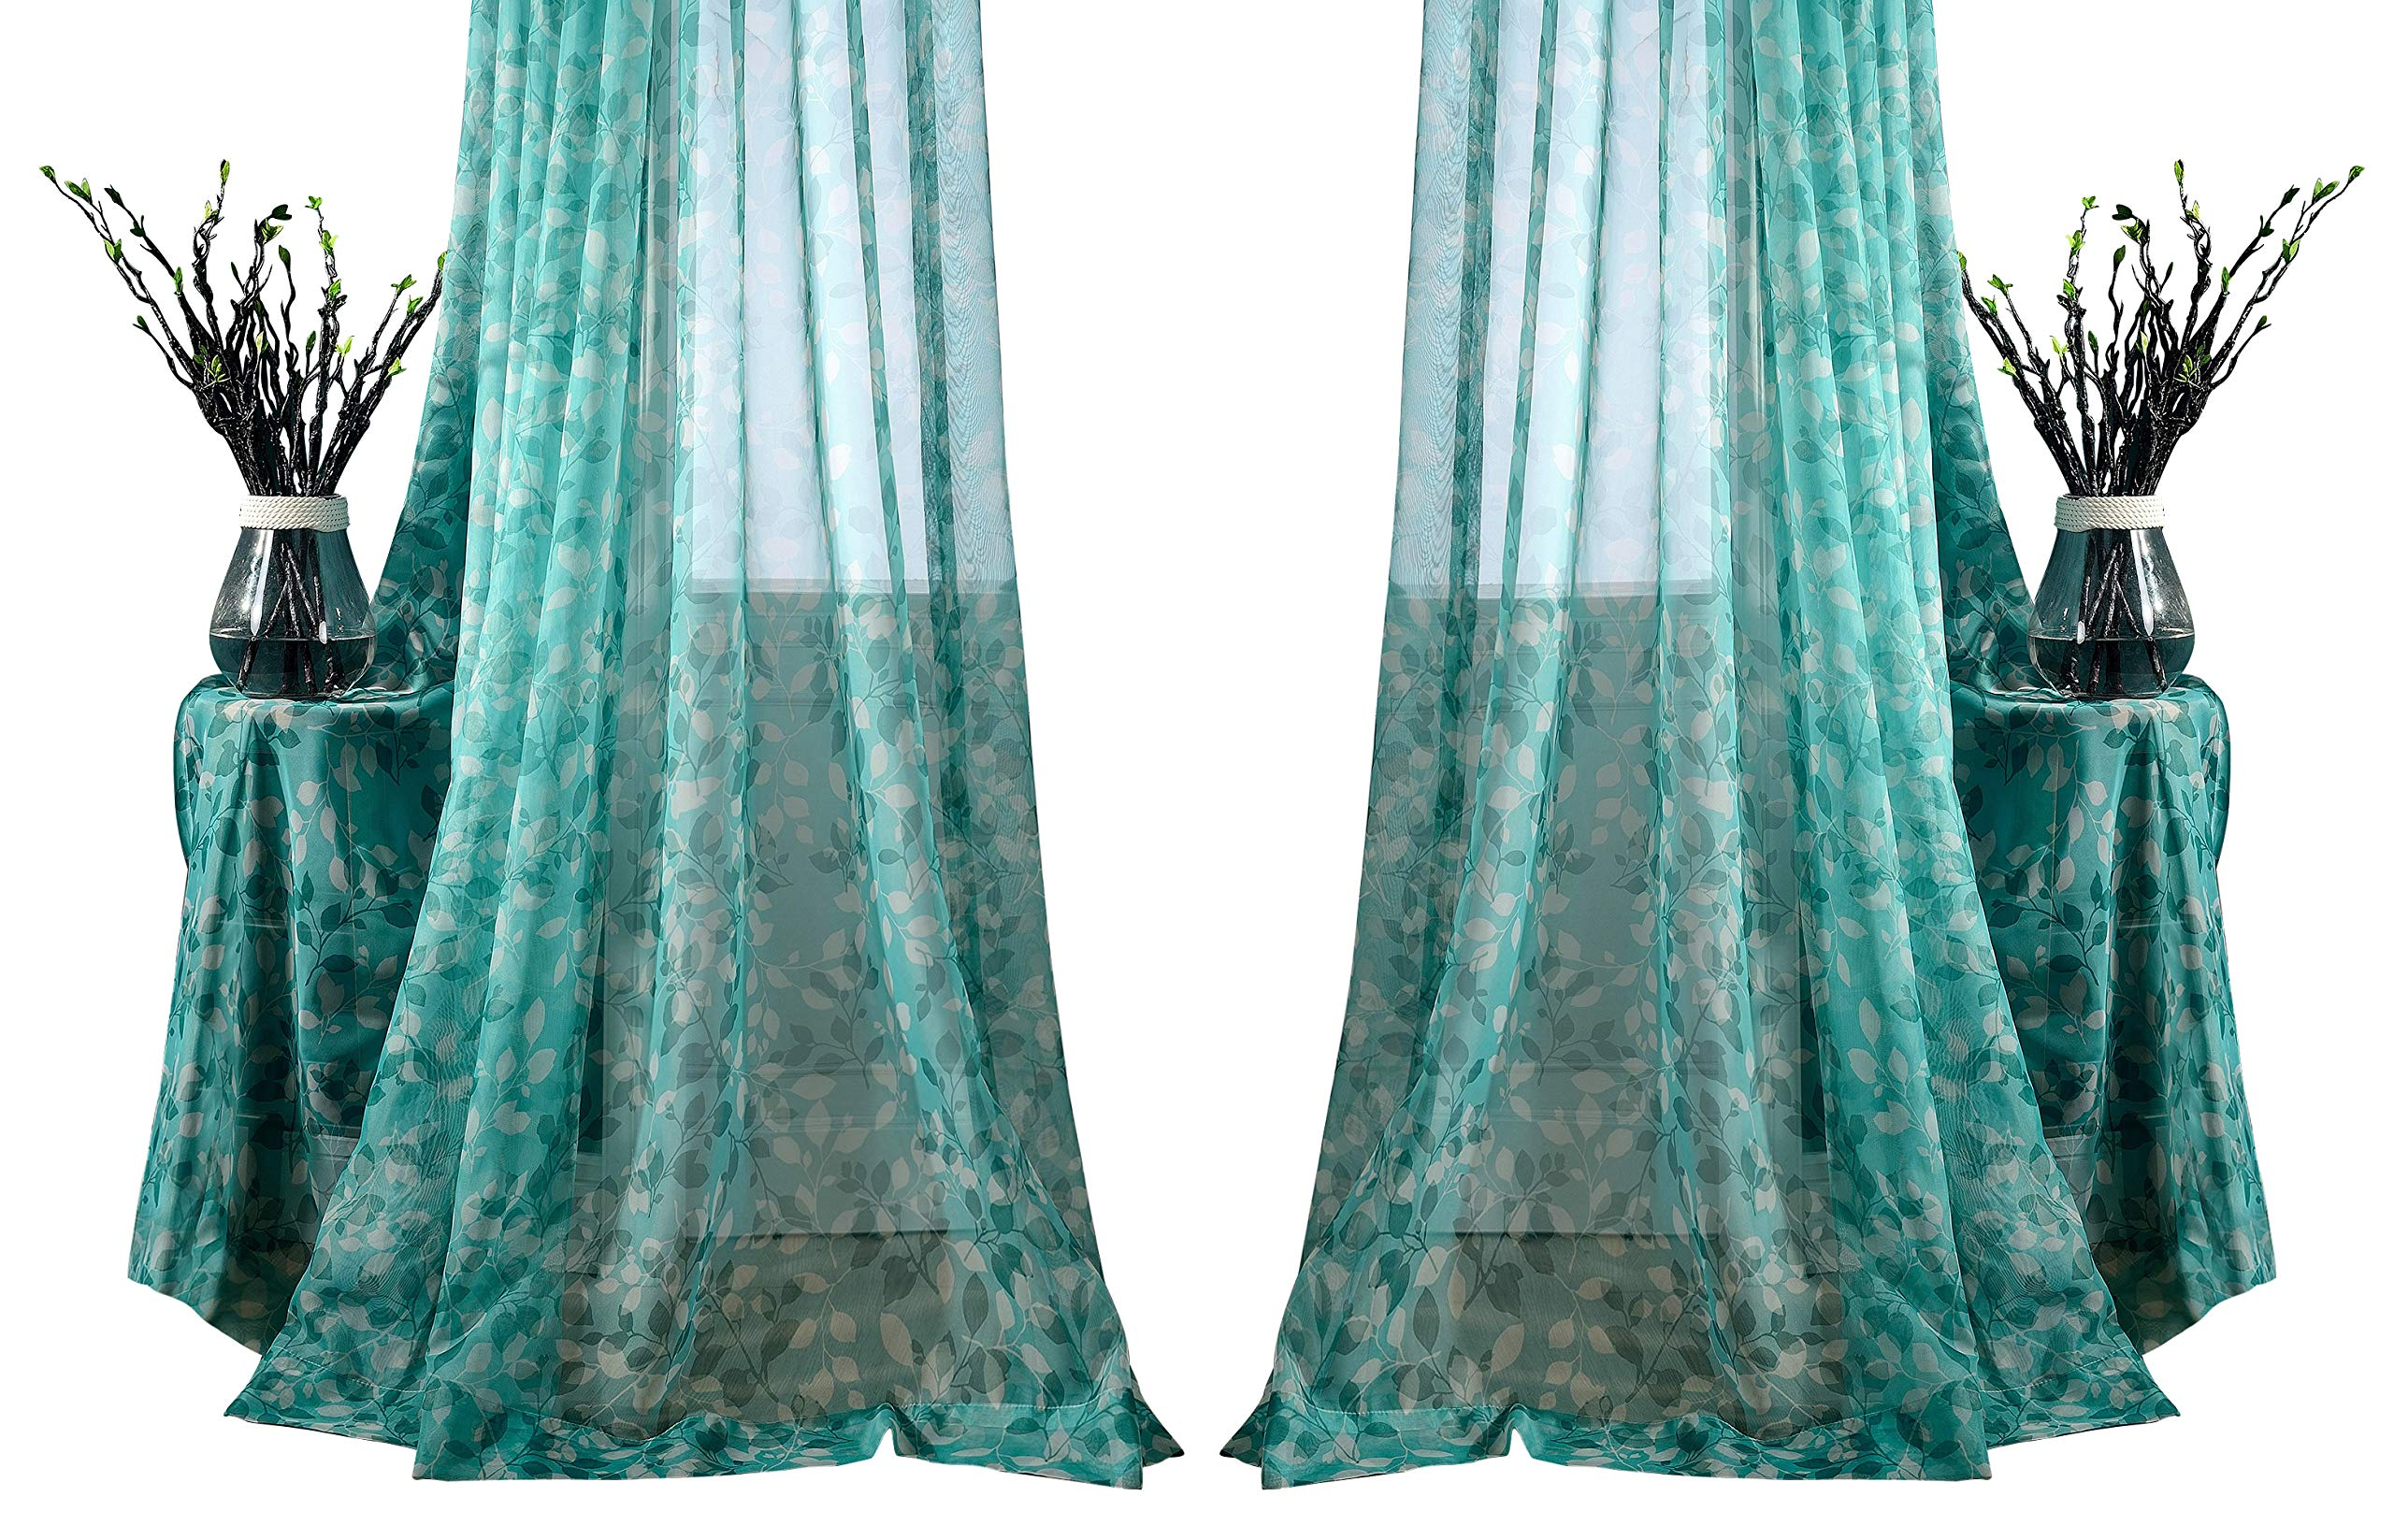 ASide BSide Modern Style Floral Printed Rod Pocket Top Sheer Curtains Voile Draperies Elegant Door Home Treatment for Kitchen Houseroom and Children Room (1 Panel, W 50 x L 84 inch, Turquoise)